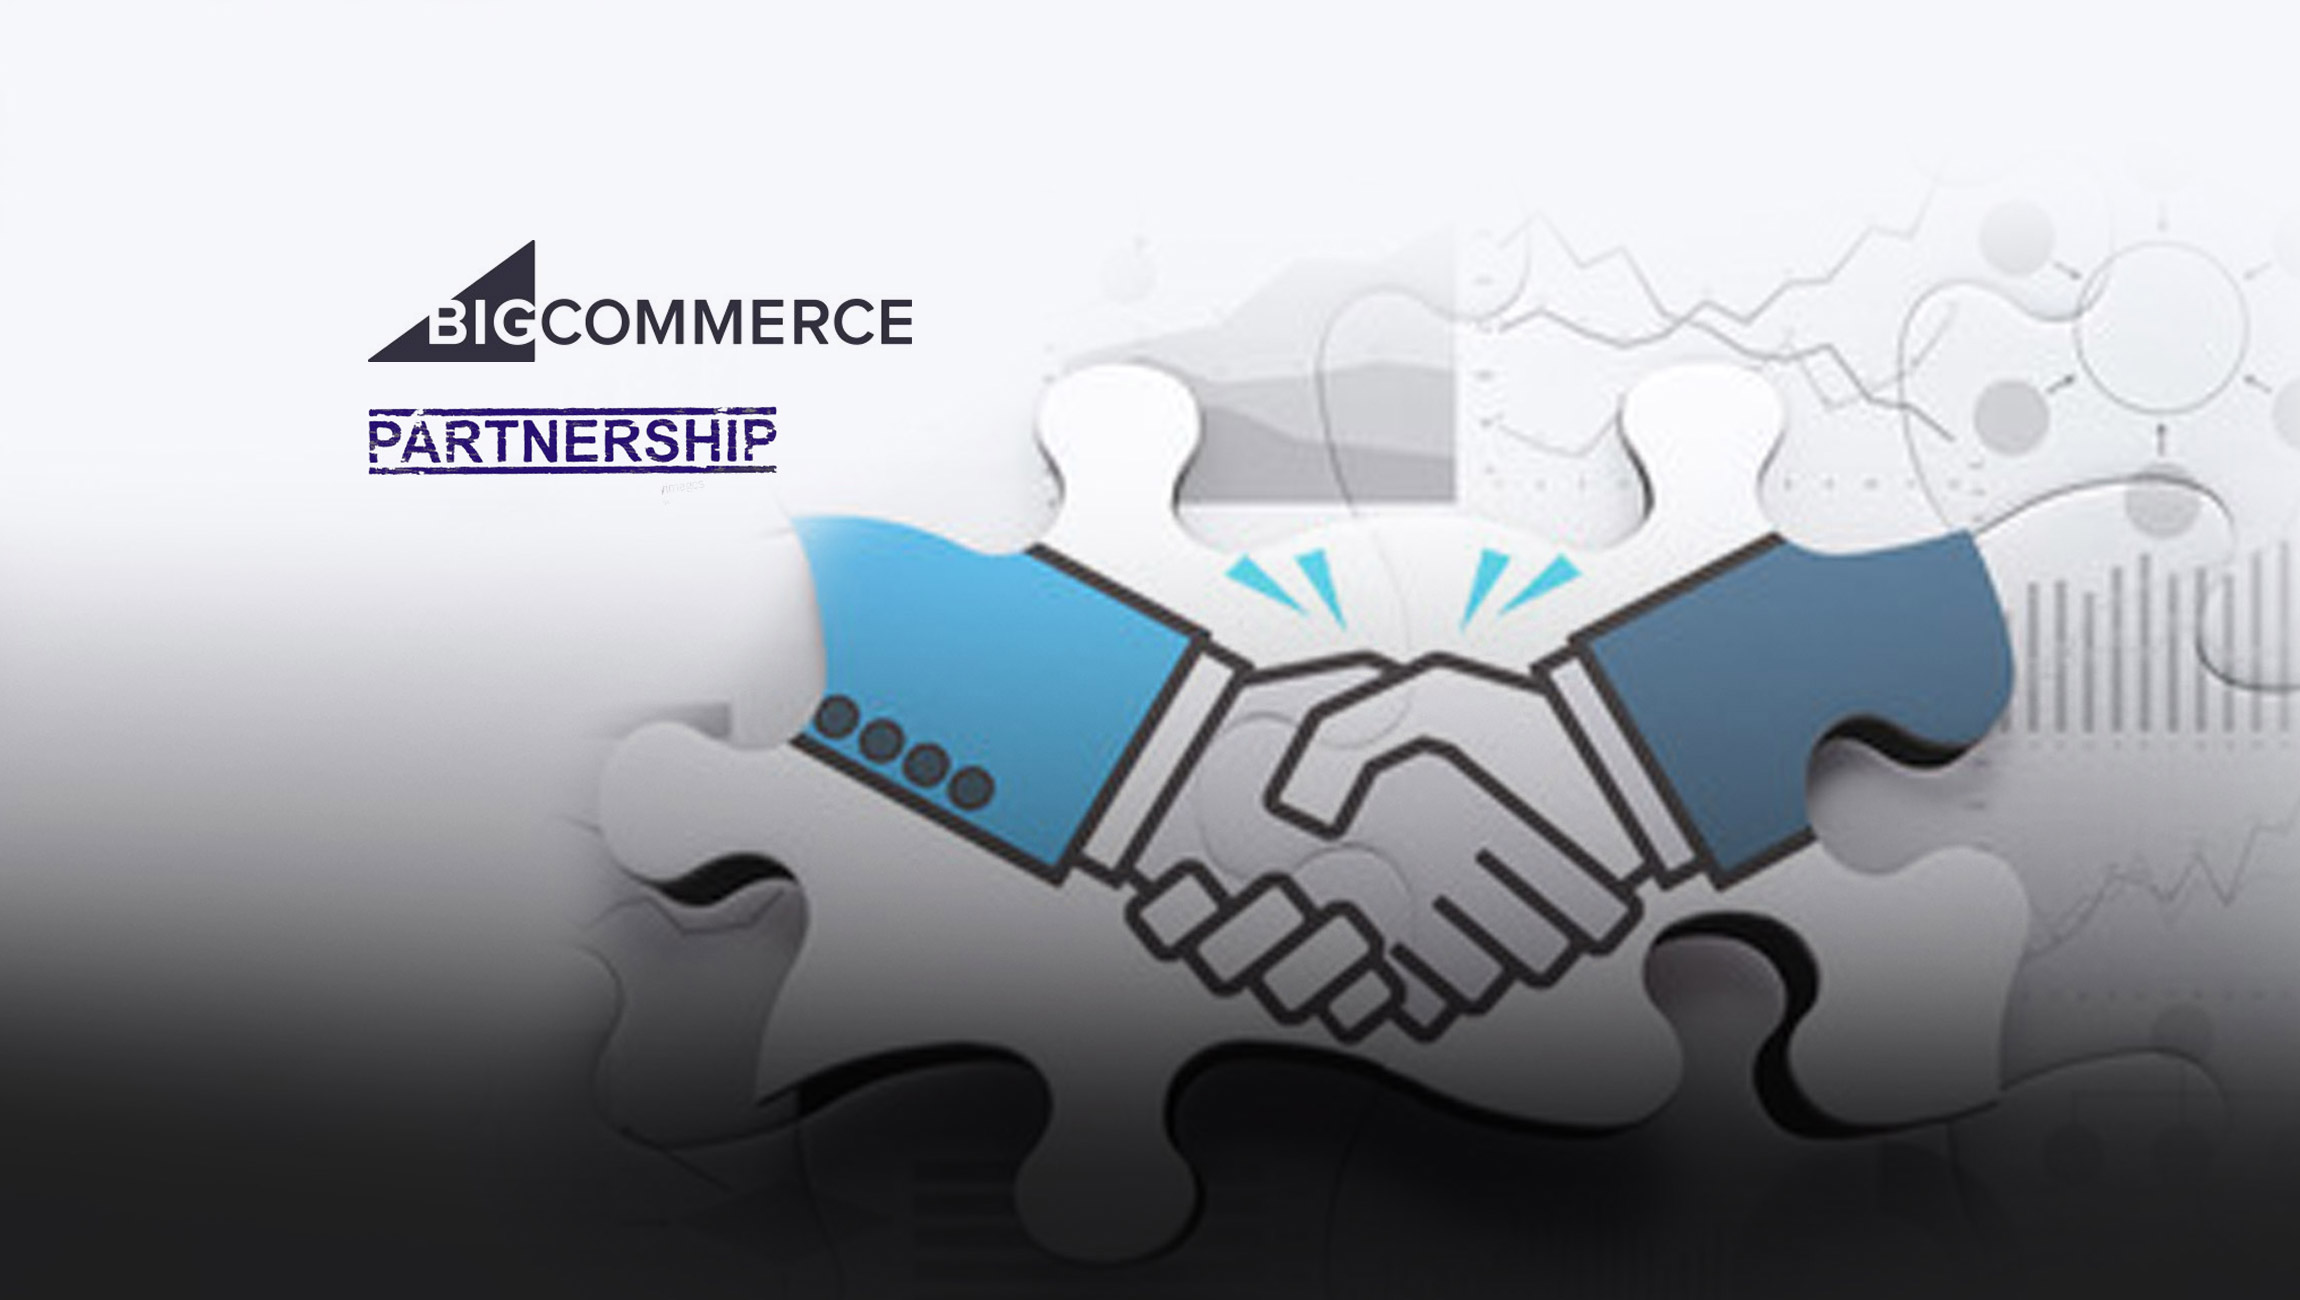 BigCommerce and WineDirect Celebrate New Partnership to Support Ecommerce Growth for Thousands of Wineries Globally